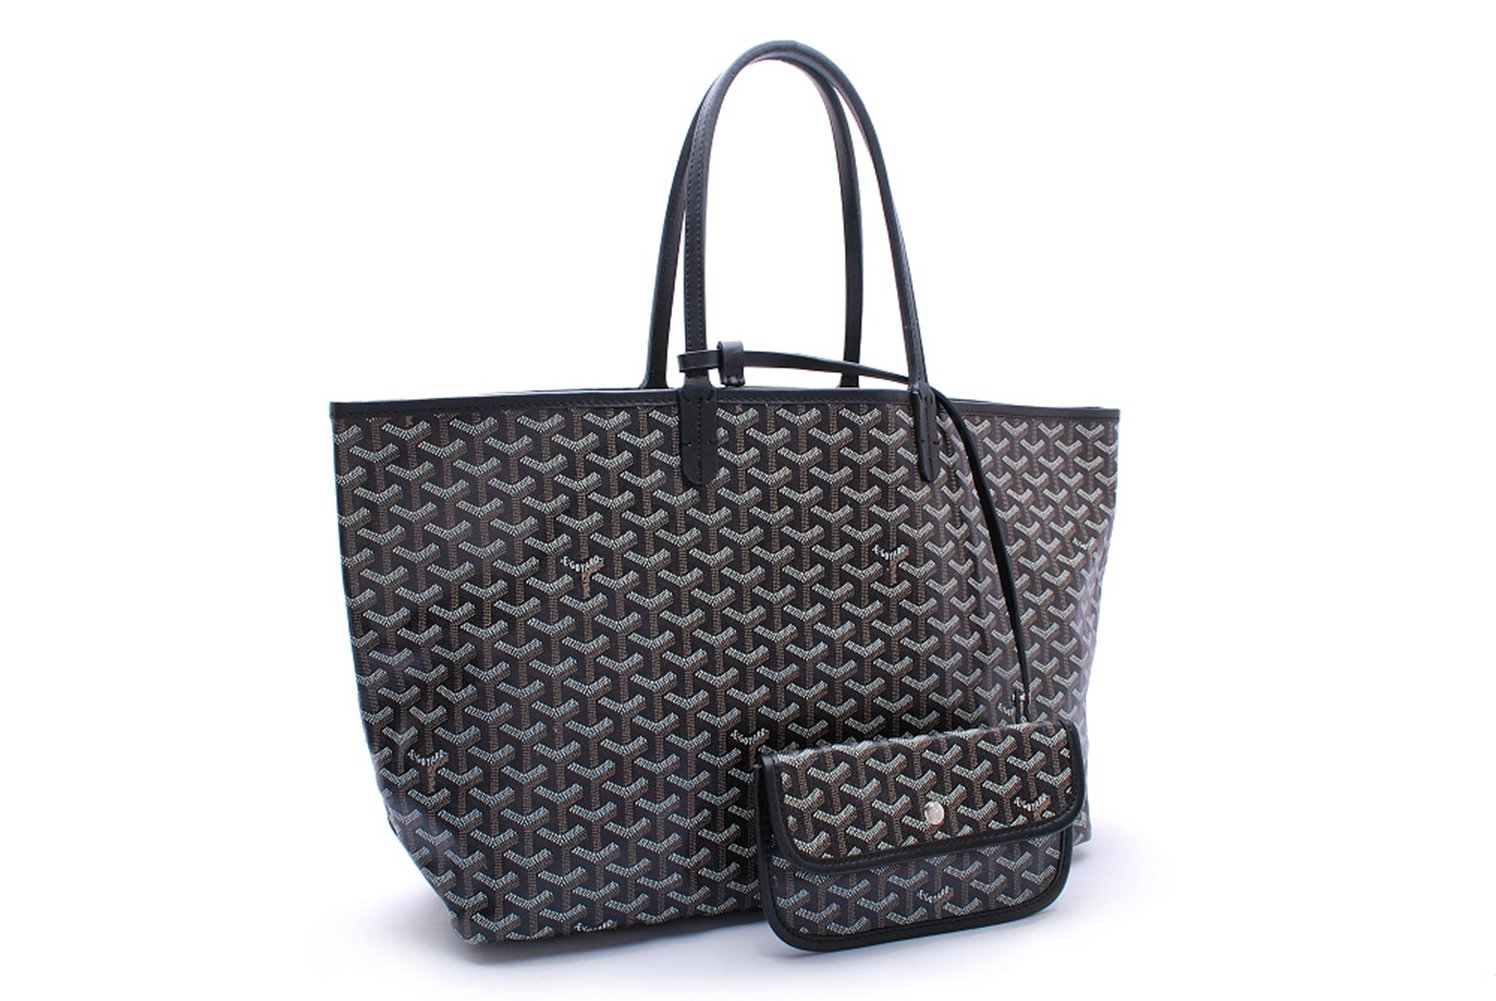 Bagcollector Fashion Shopping Shoulder Tote Bag Set(Black)